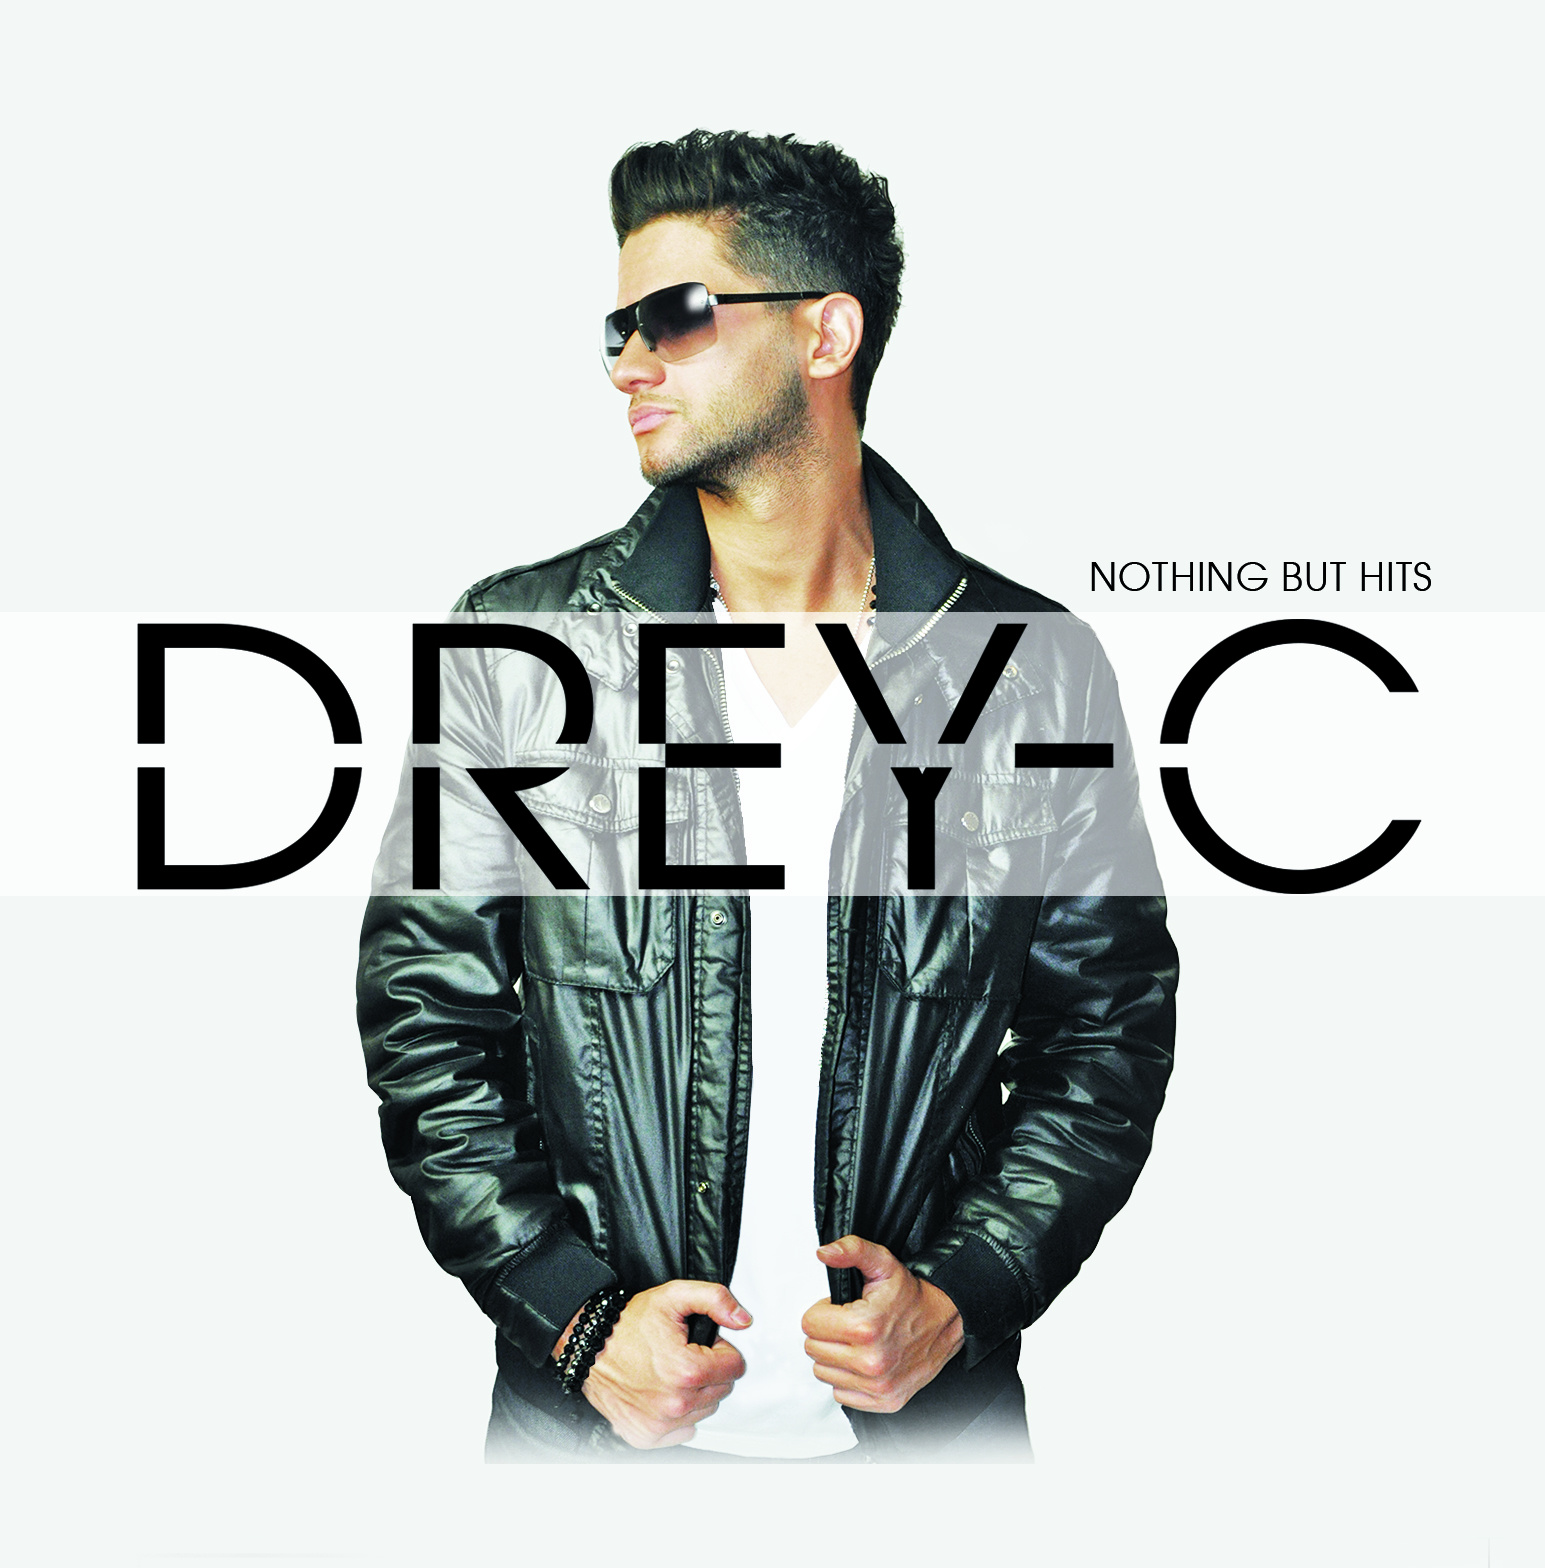 06-Drey-C - Nothing But Hits.jpg